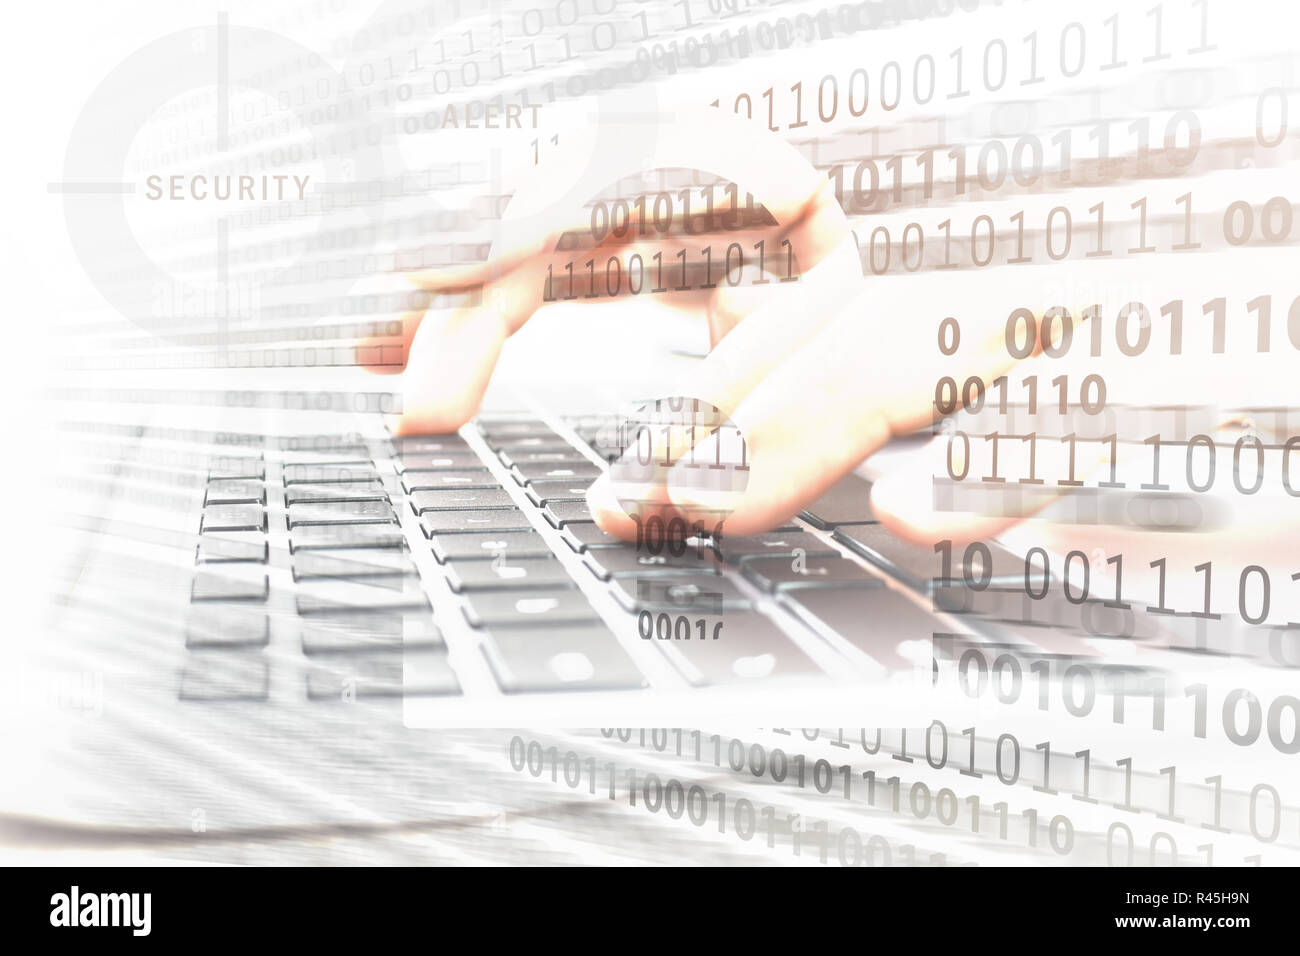 Composite image of digital security and cryptology system - closed padlock on the background of working programmer and network binary hologram - Stock Image